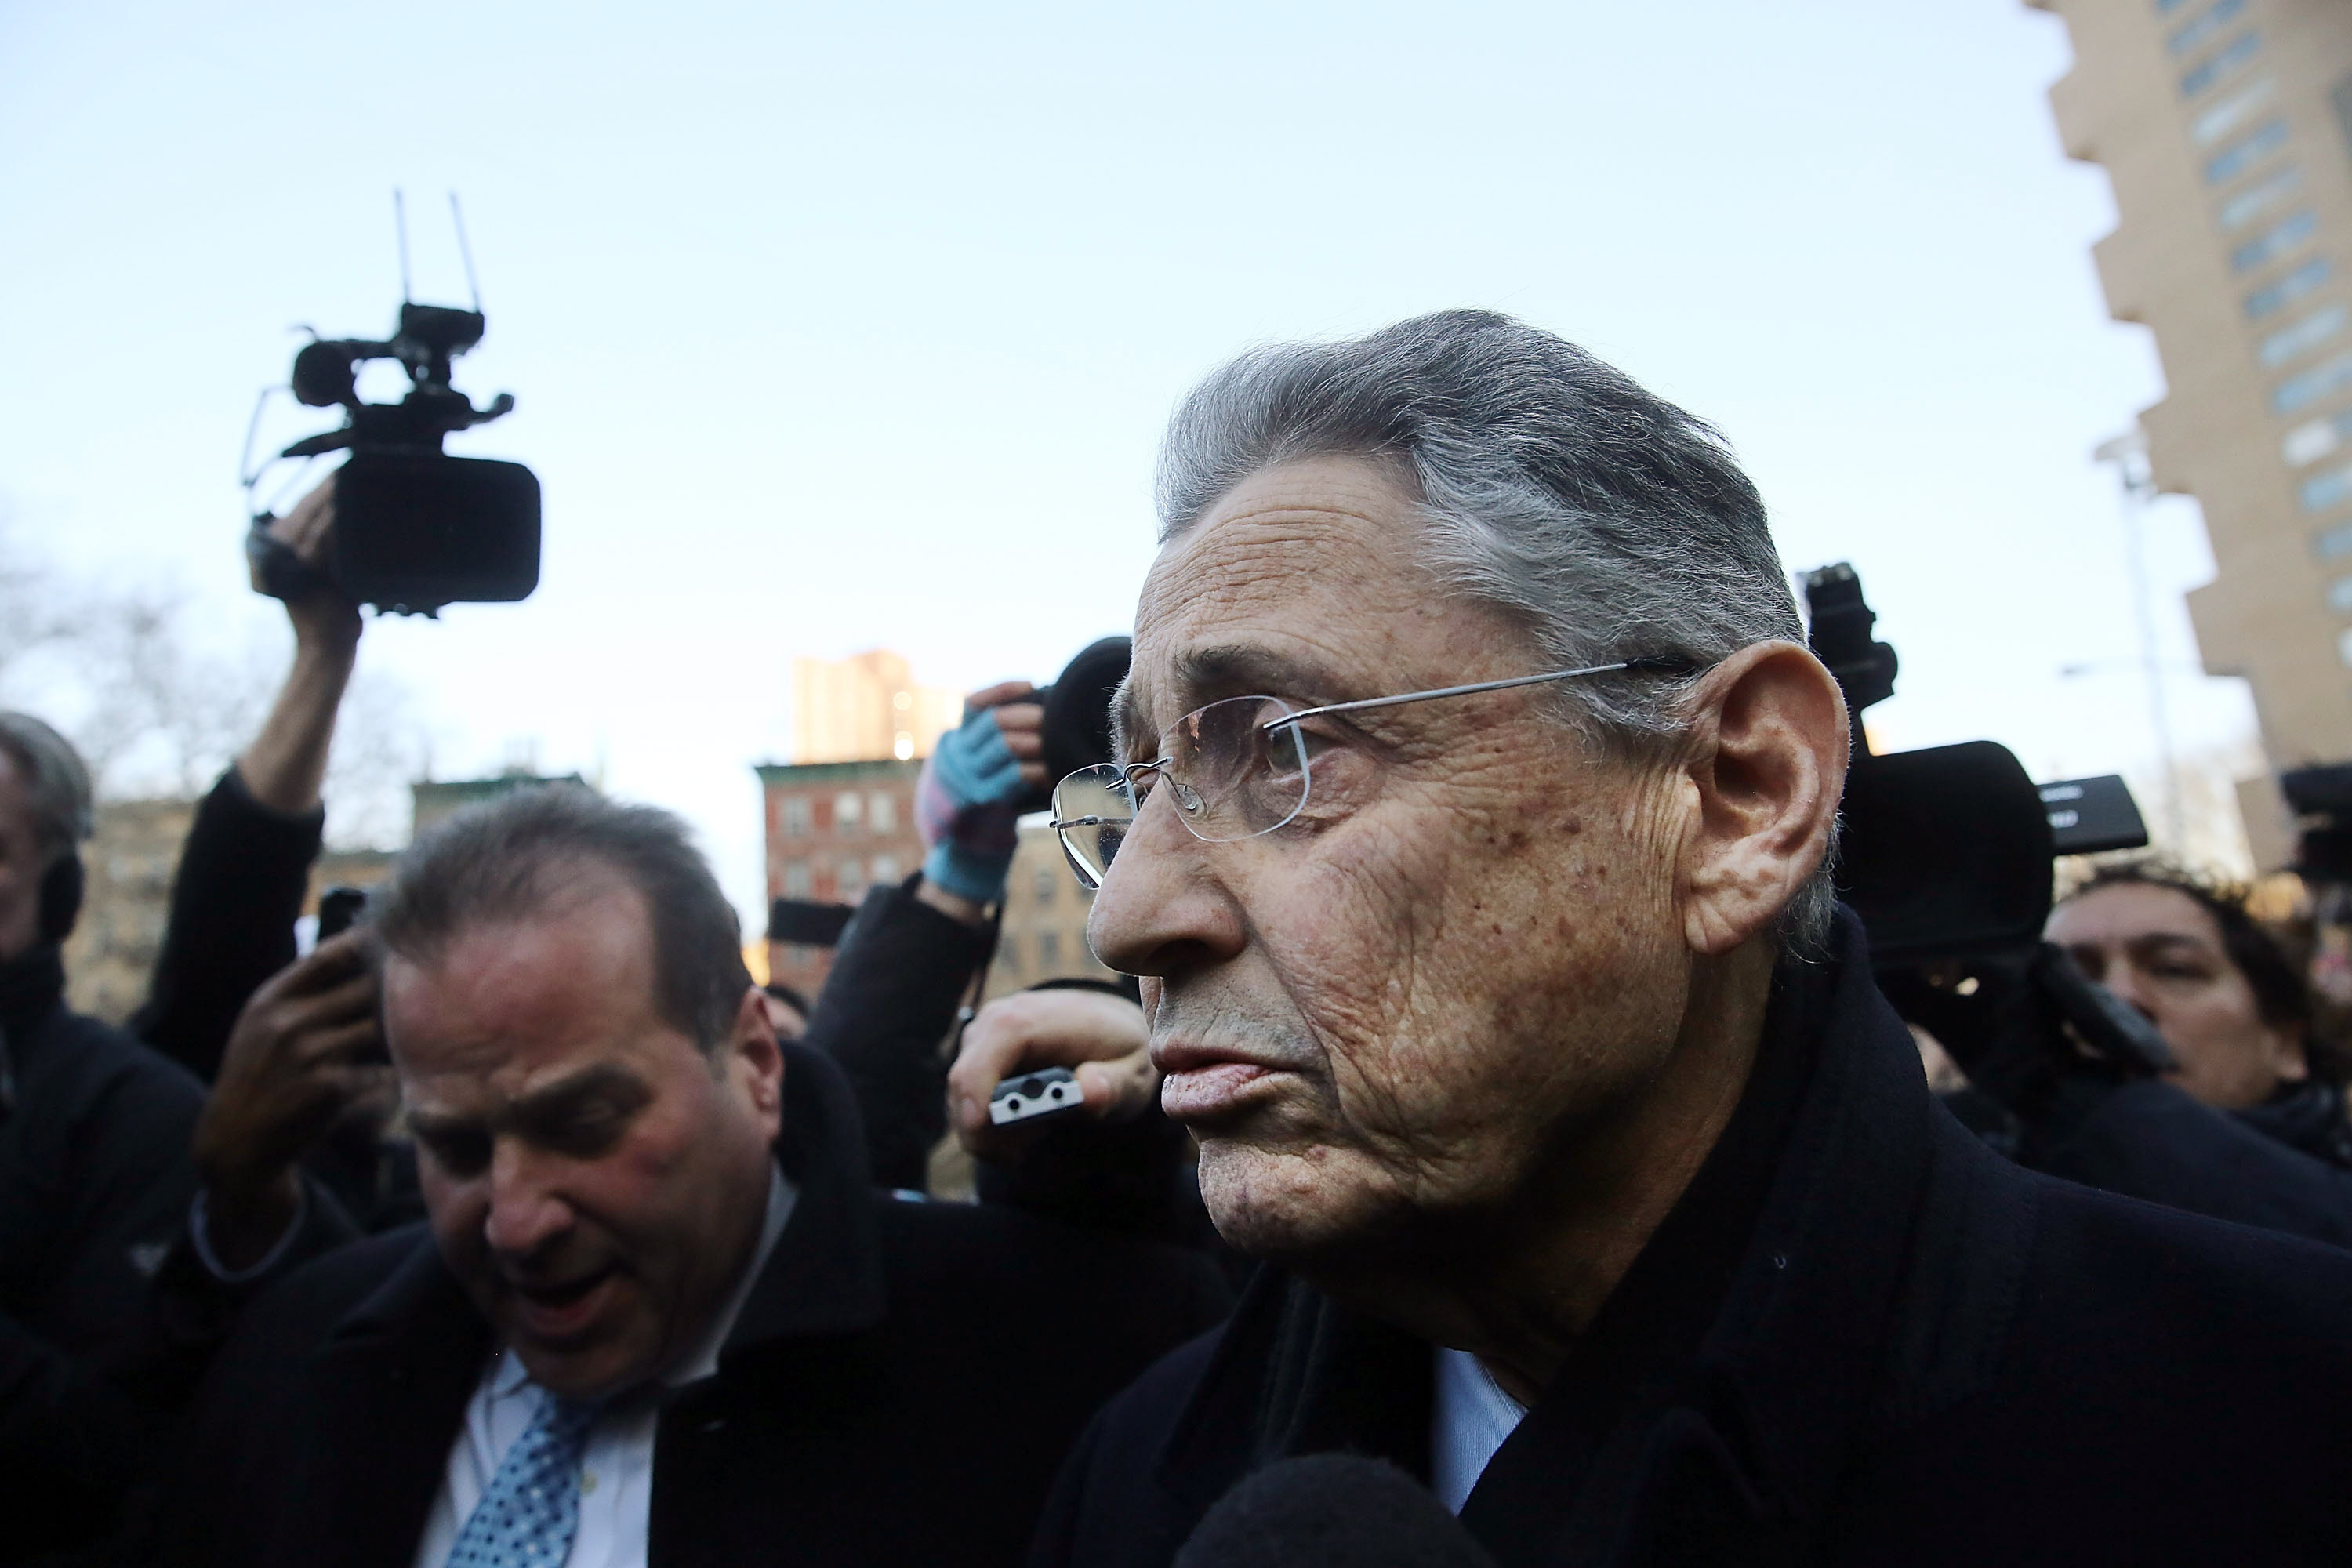 Assembly Speaker Sheldon Silver. (Photo: Spencer Platt/Getty Images)